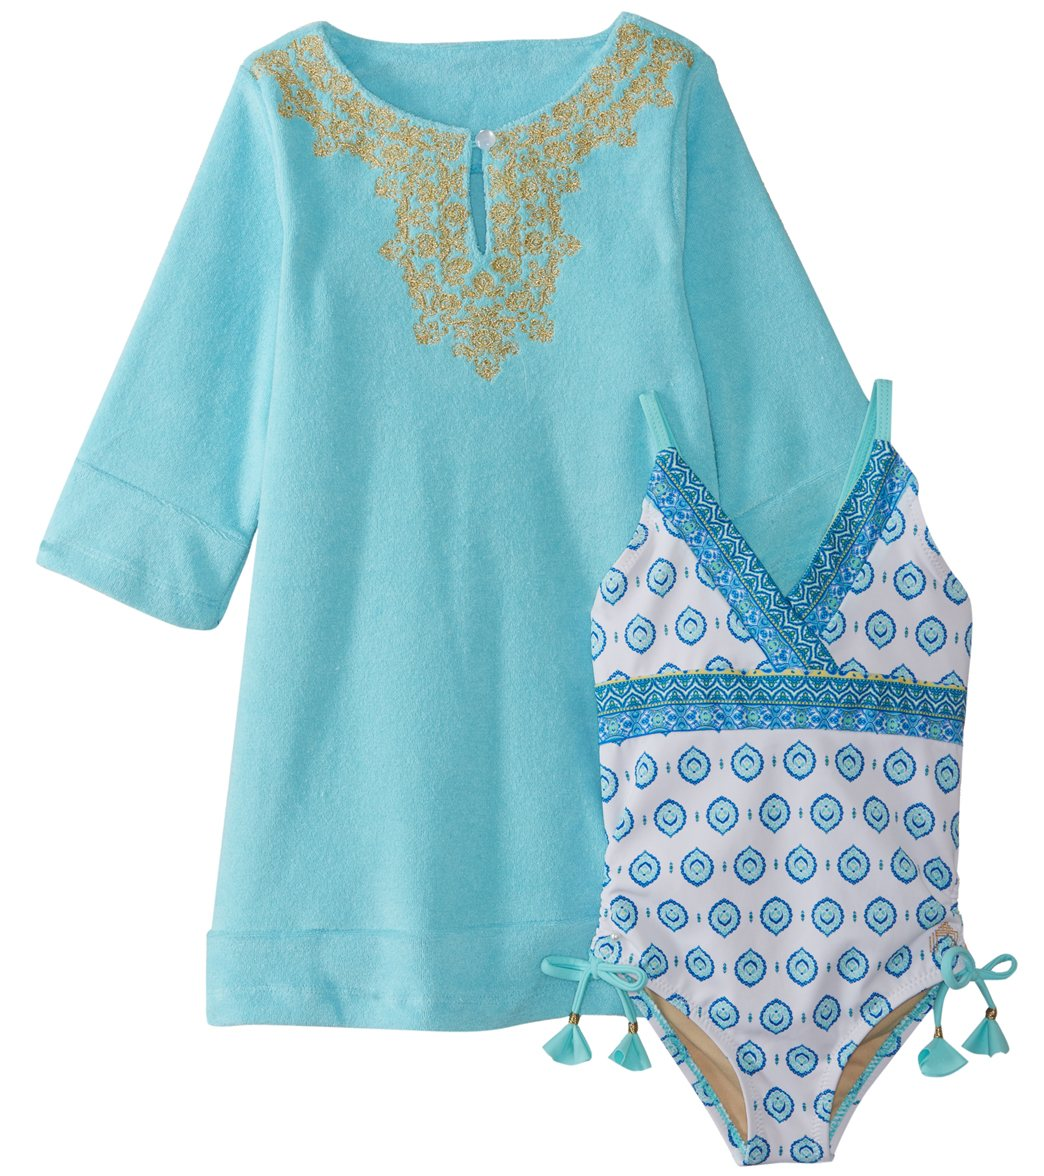 25cc9466c7 Cabana Life Girls  Hidden Cove Swimsuit and Cover Up Set (Toddler ...